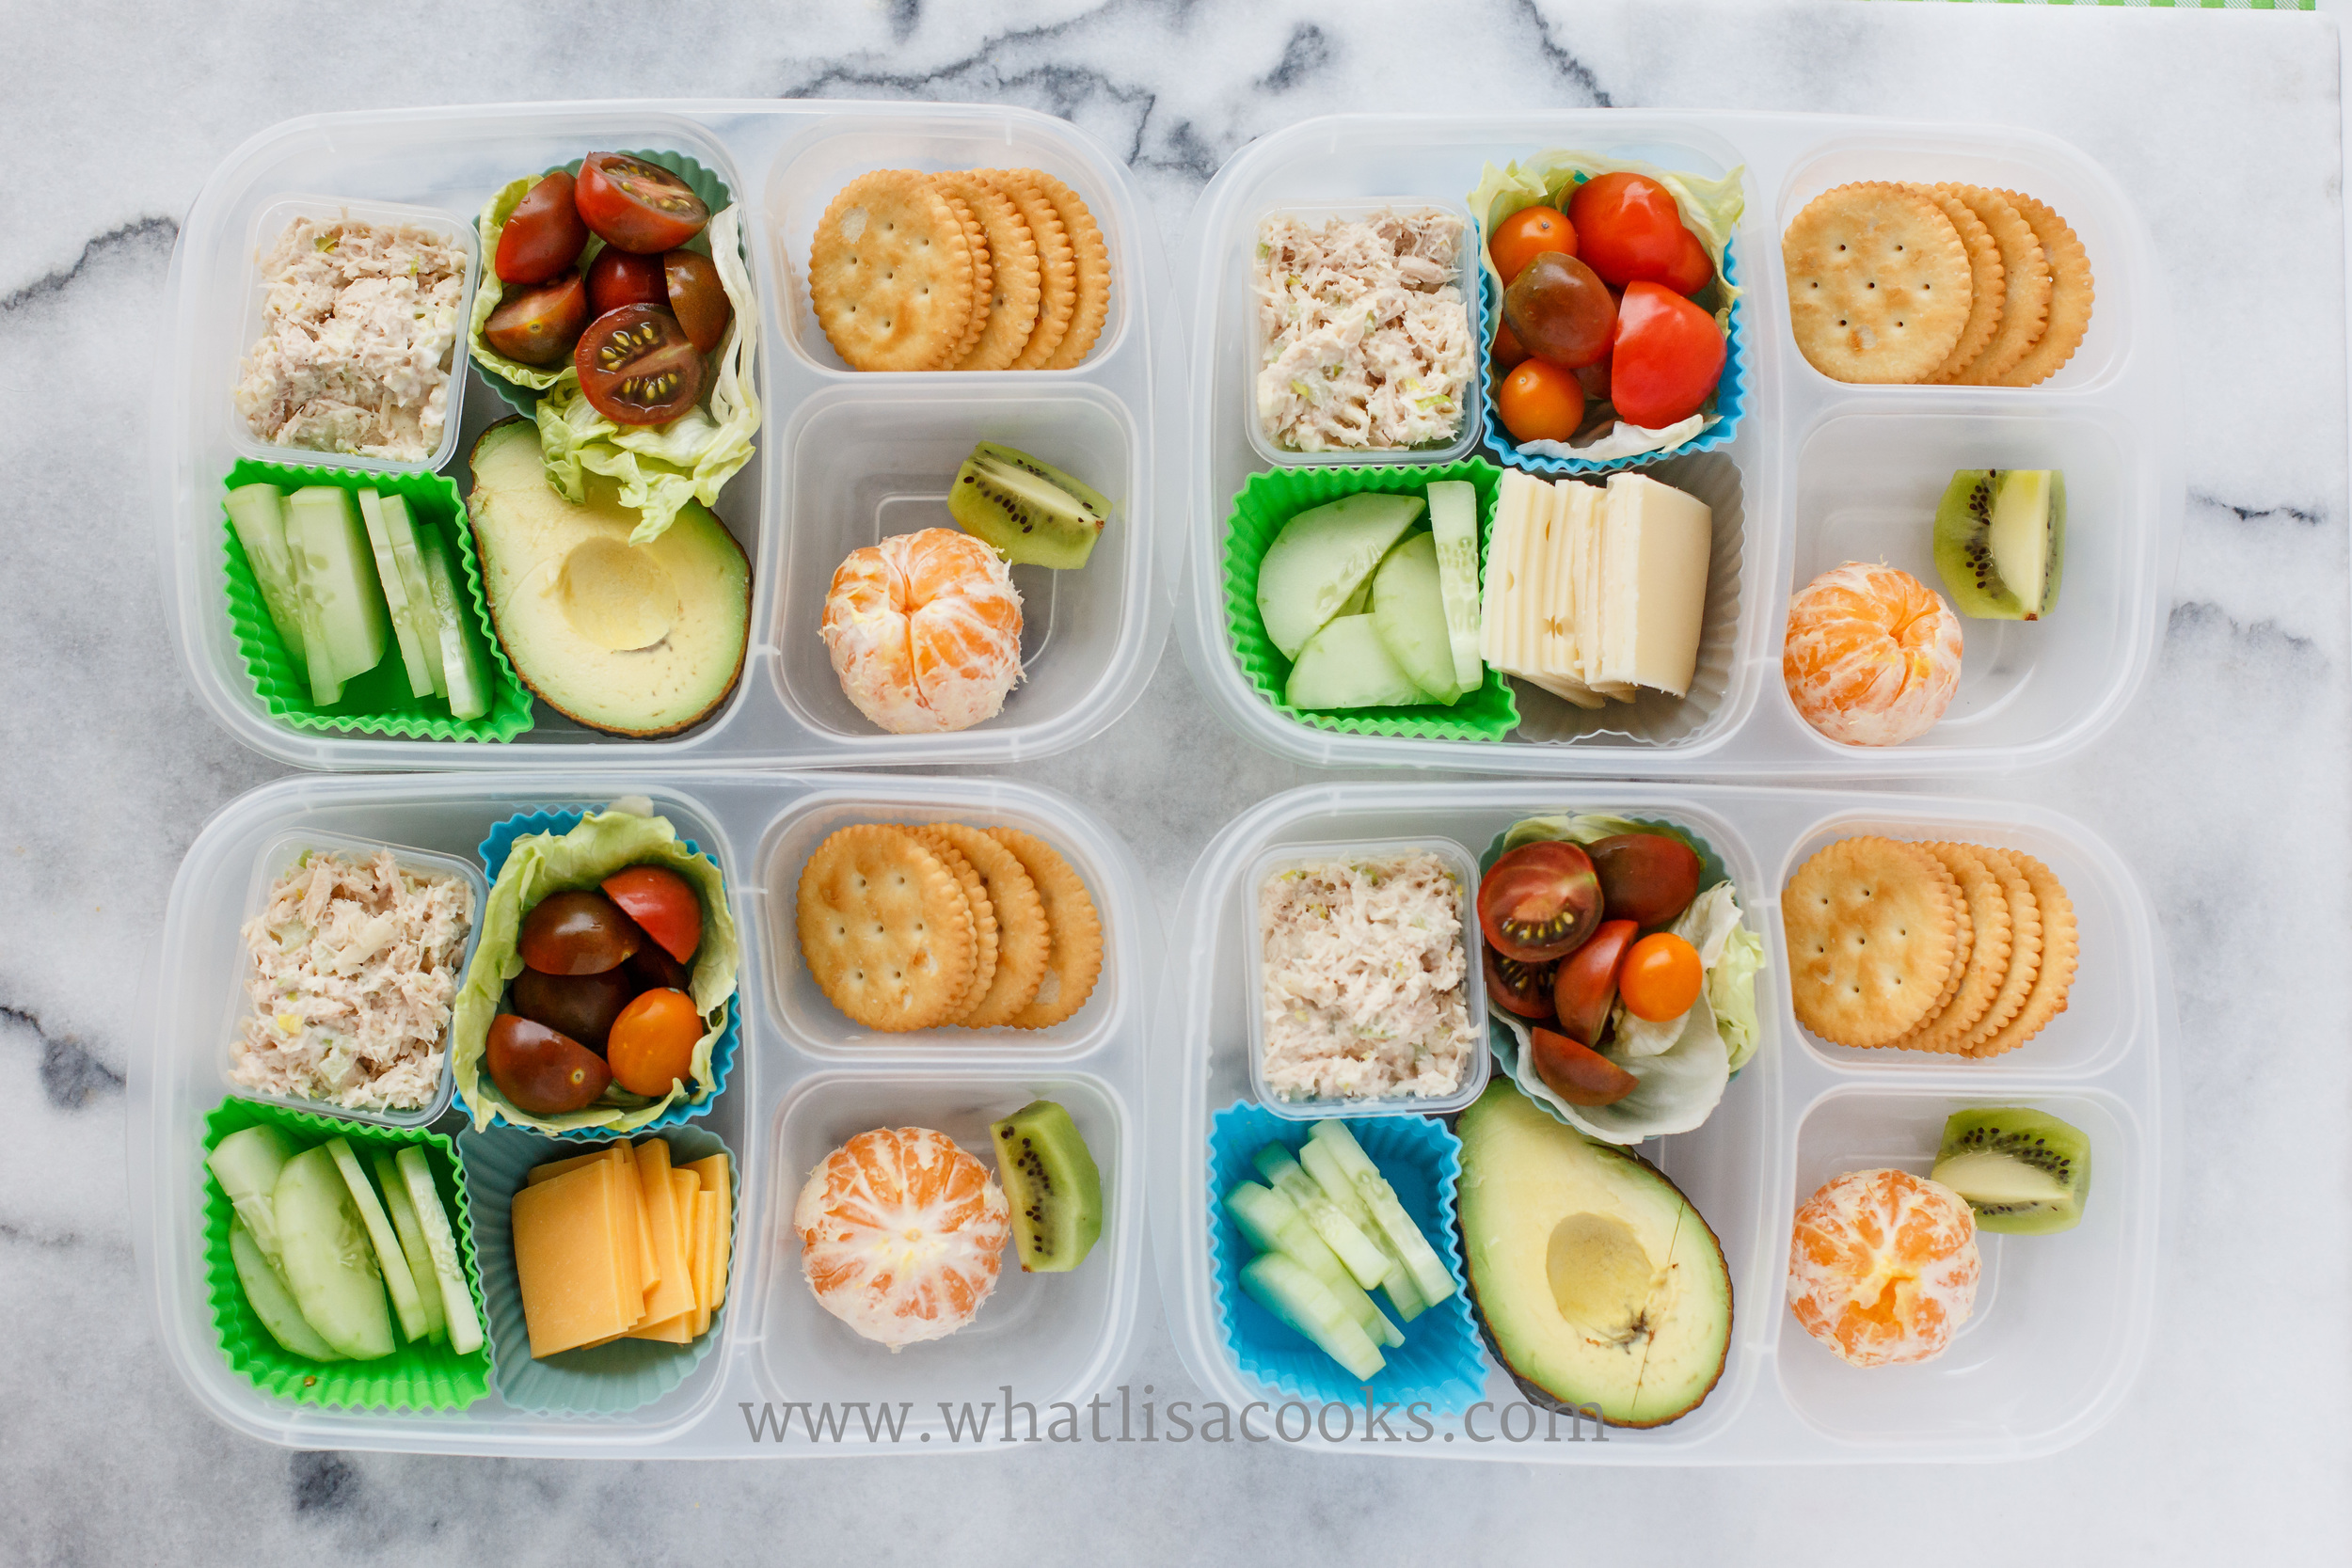 Tuna salad boxes. Simple tuna salad with mayo, celery, celery salt, and shredded mozzarella. With tomatoes in a lettuce cup, cucumbers, cheese, crackers, orange, and kiwi.